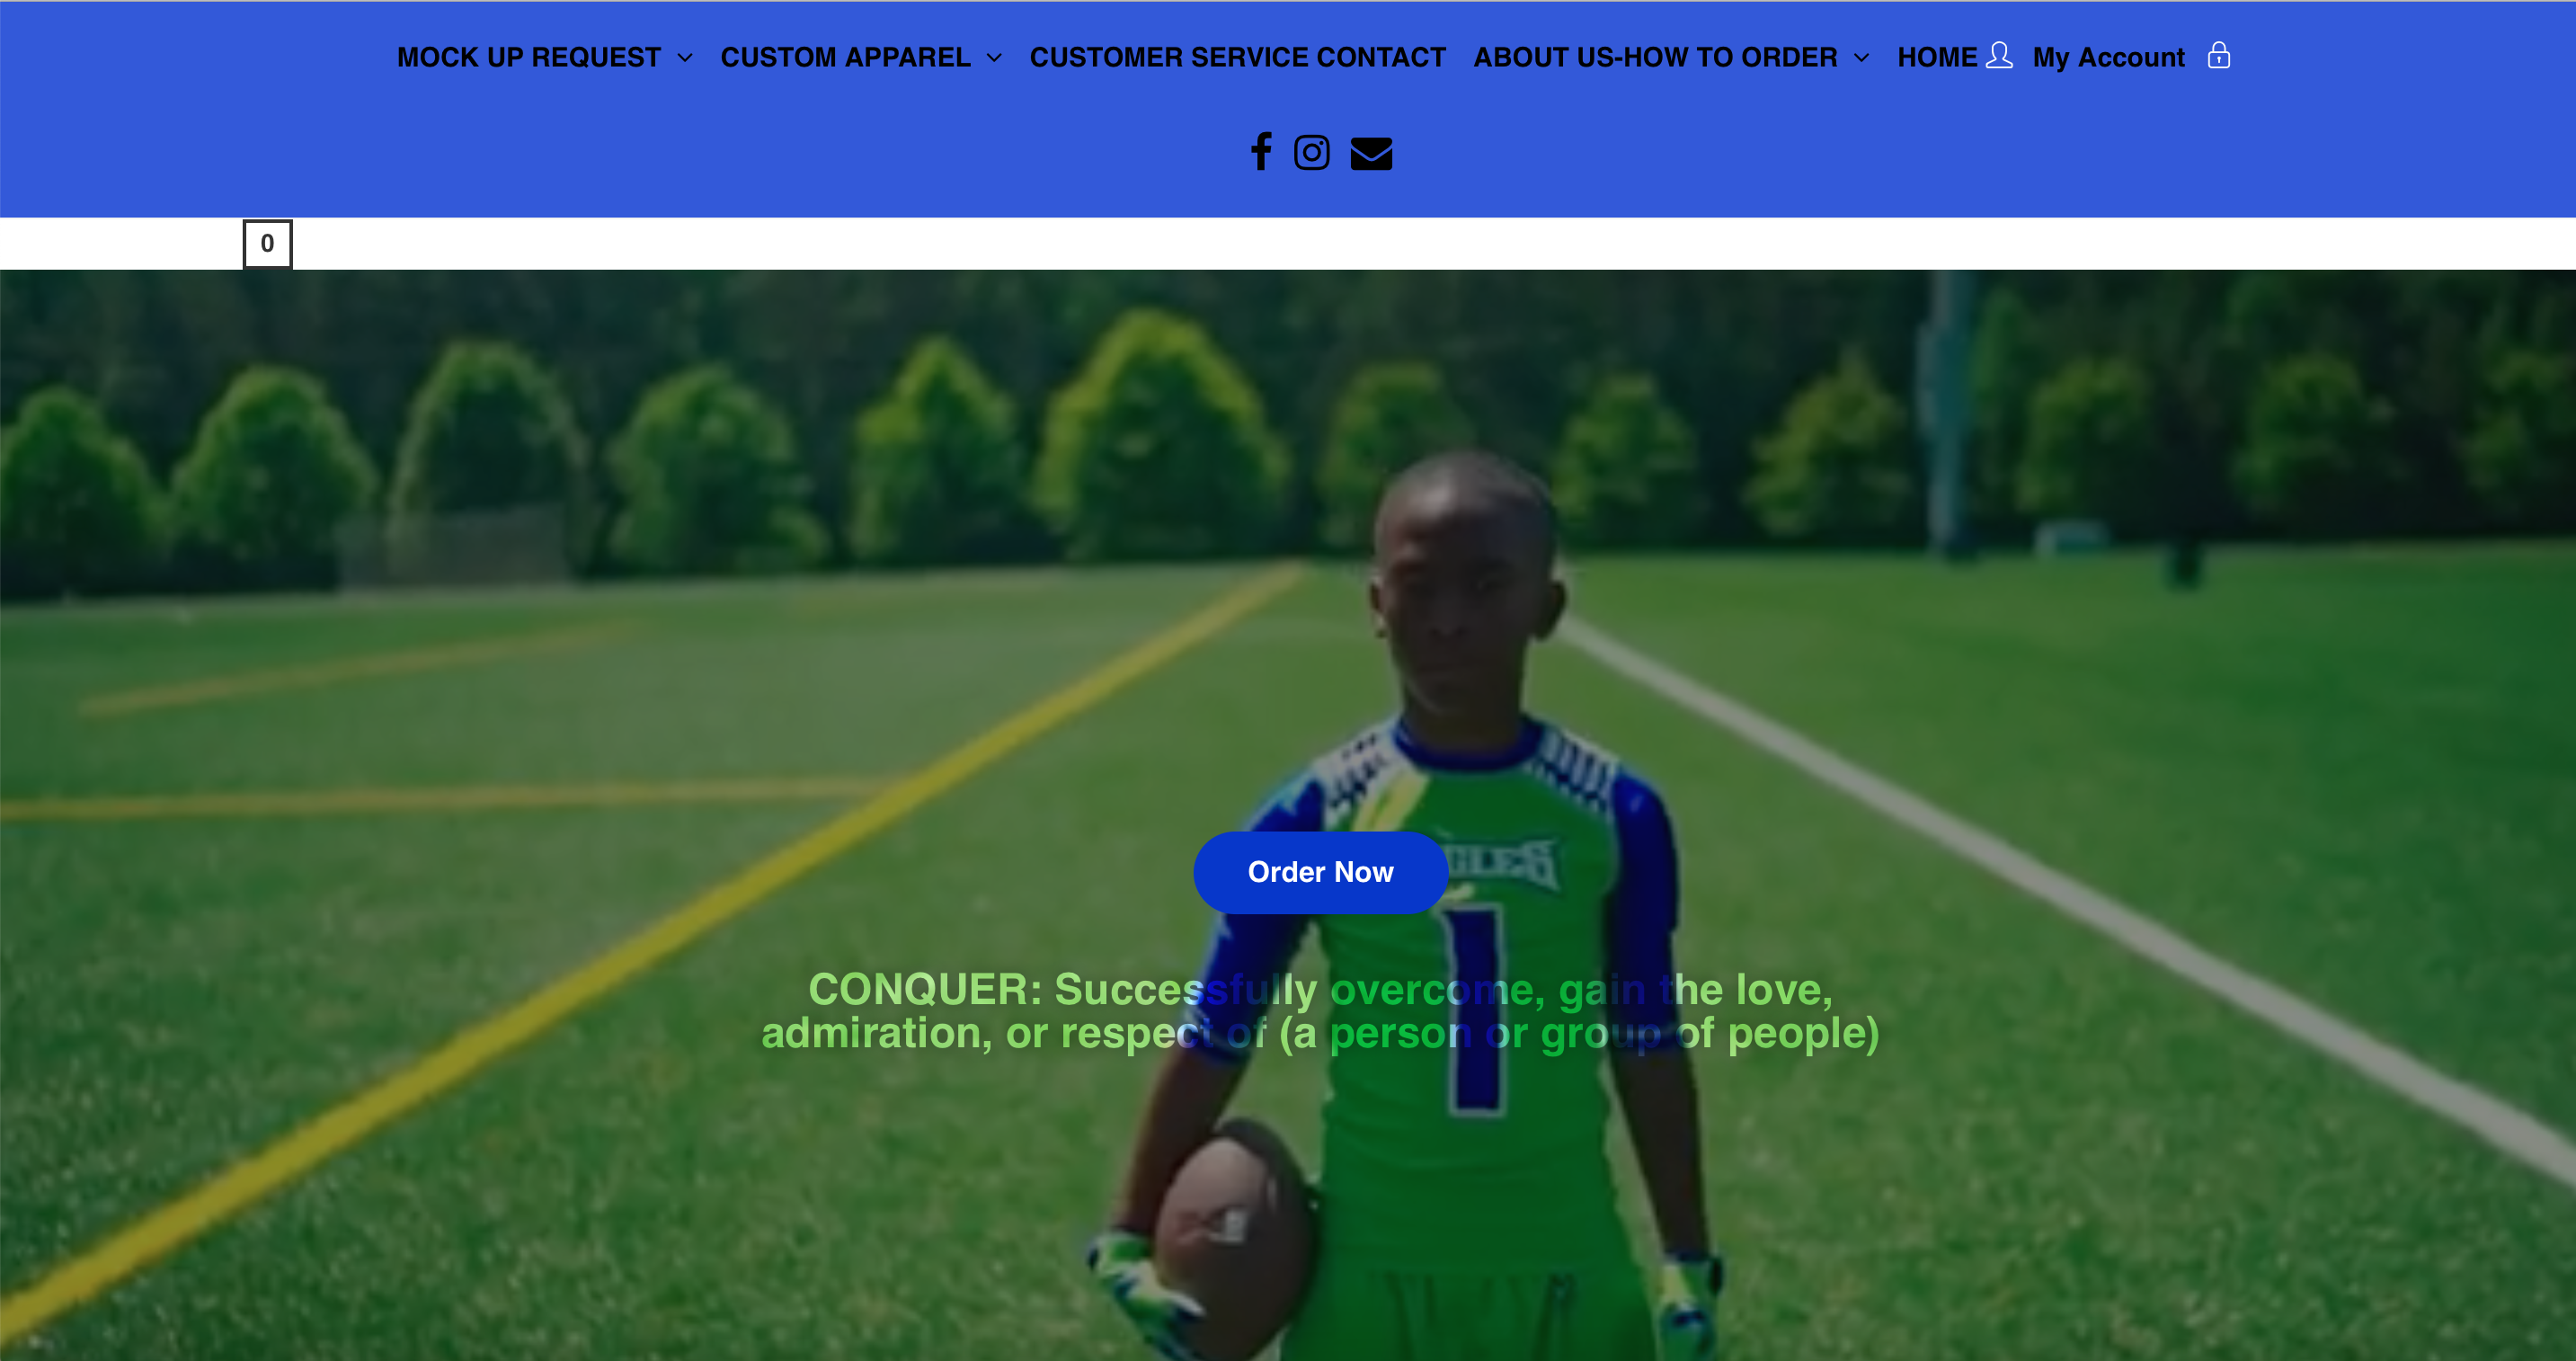 Conquer Athlete Apparel Website Homepage Snapshot